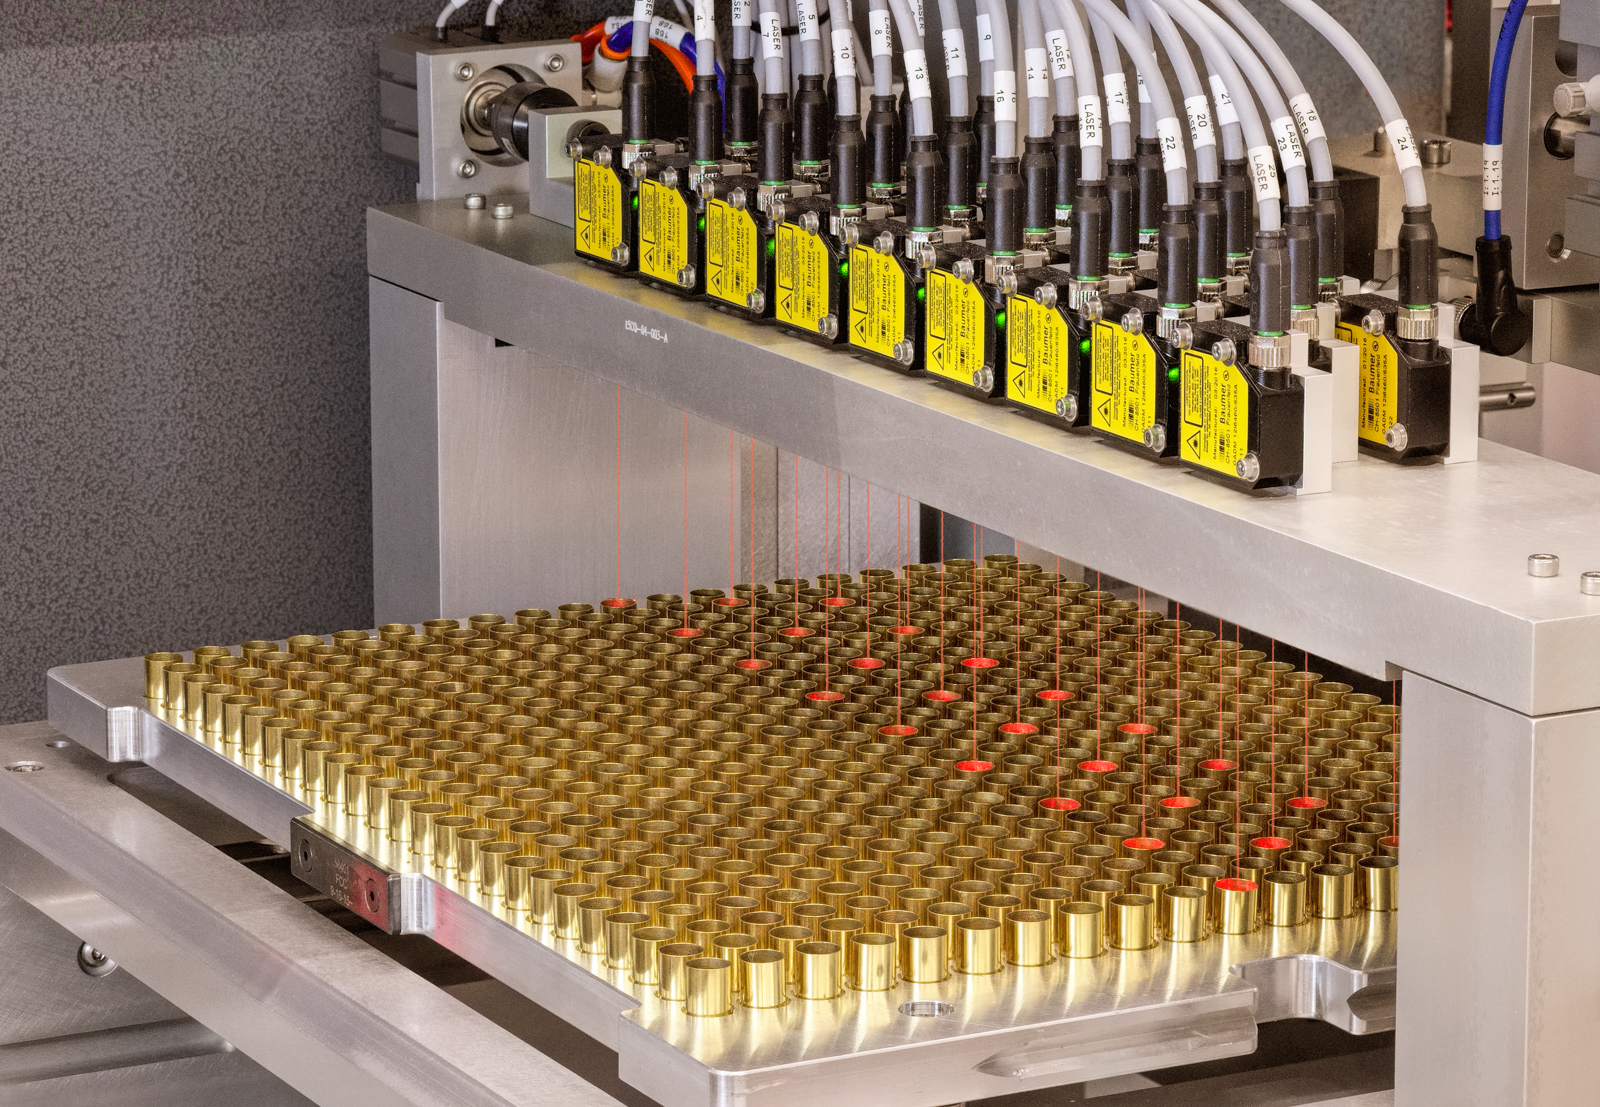 A bank of lasers light up cartridges being manufactured with red.